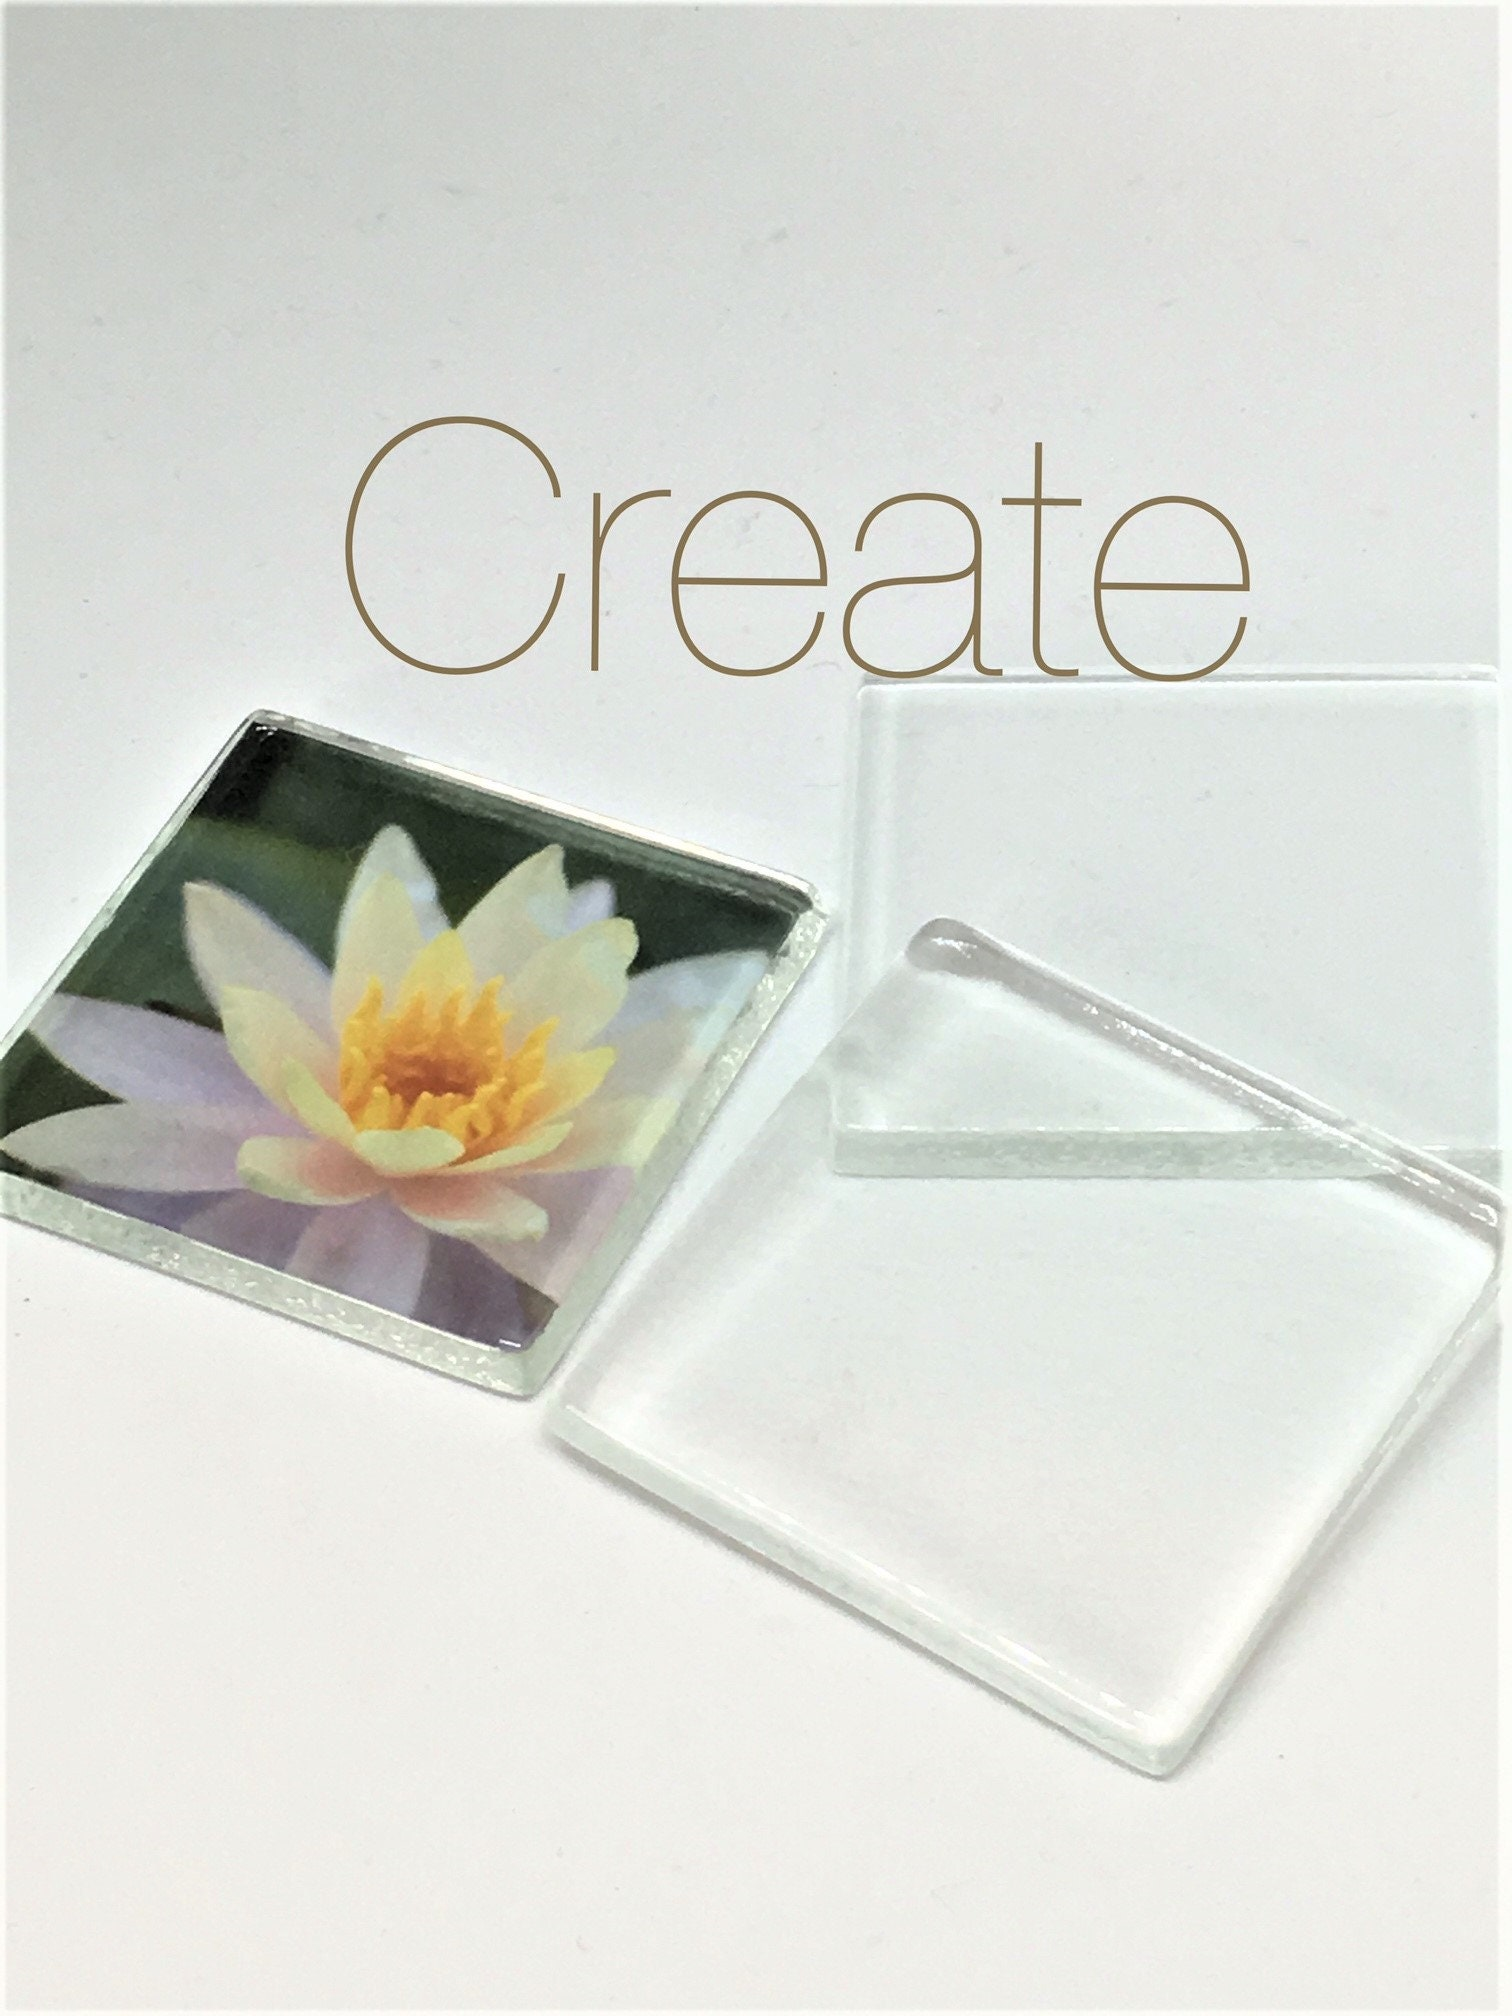 100 Large Keepsake Crystal Clear Glass Squares Photo Magnets Etsy